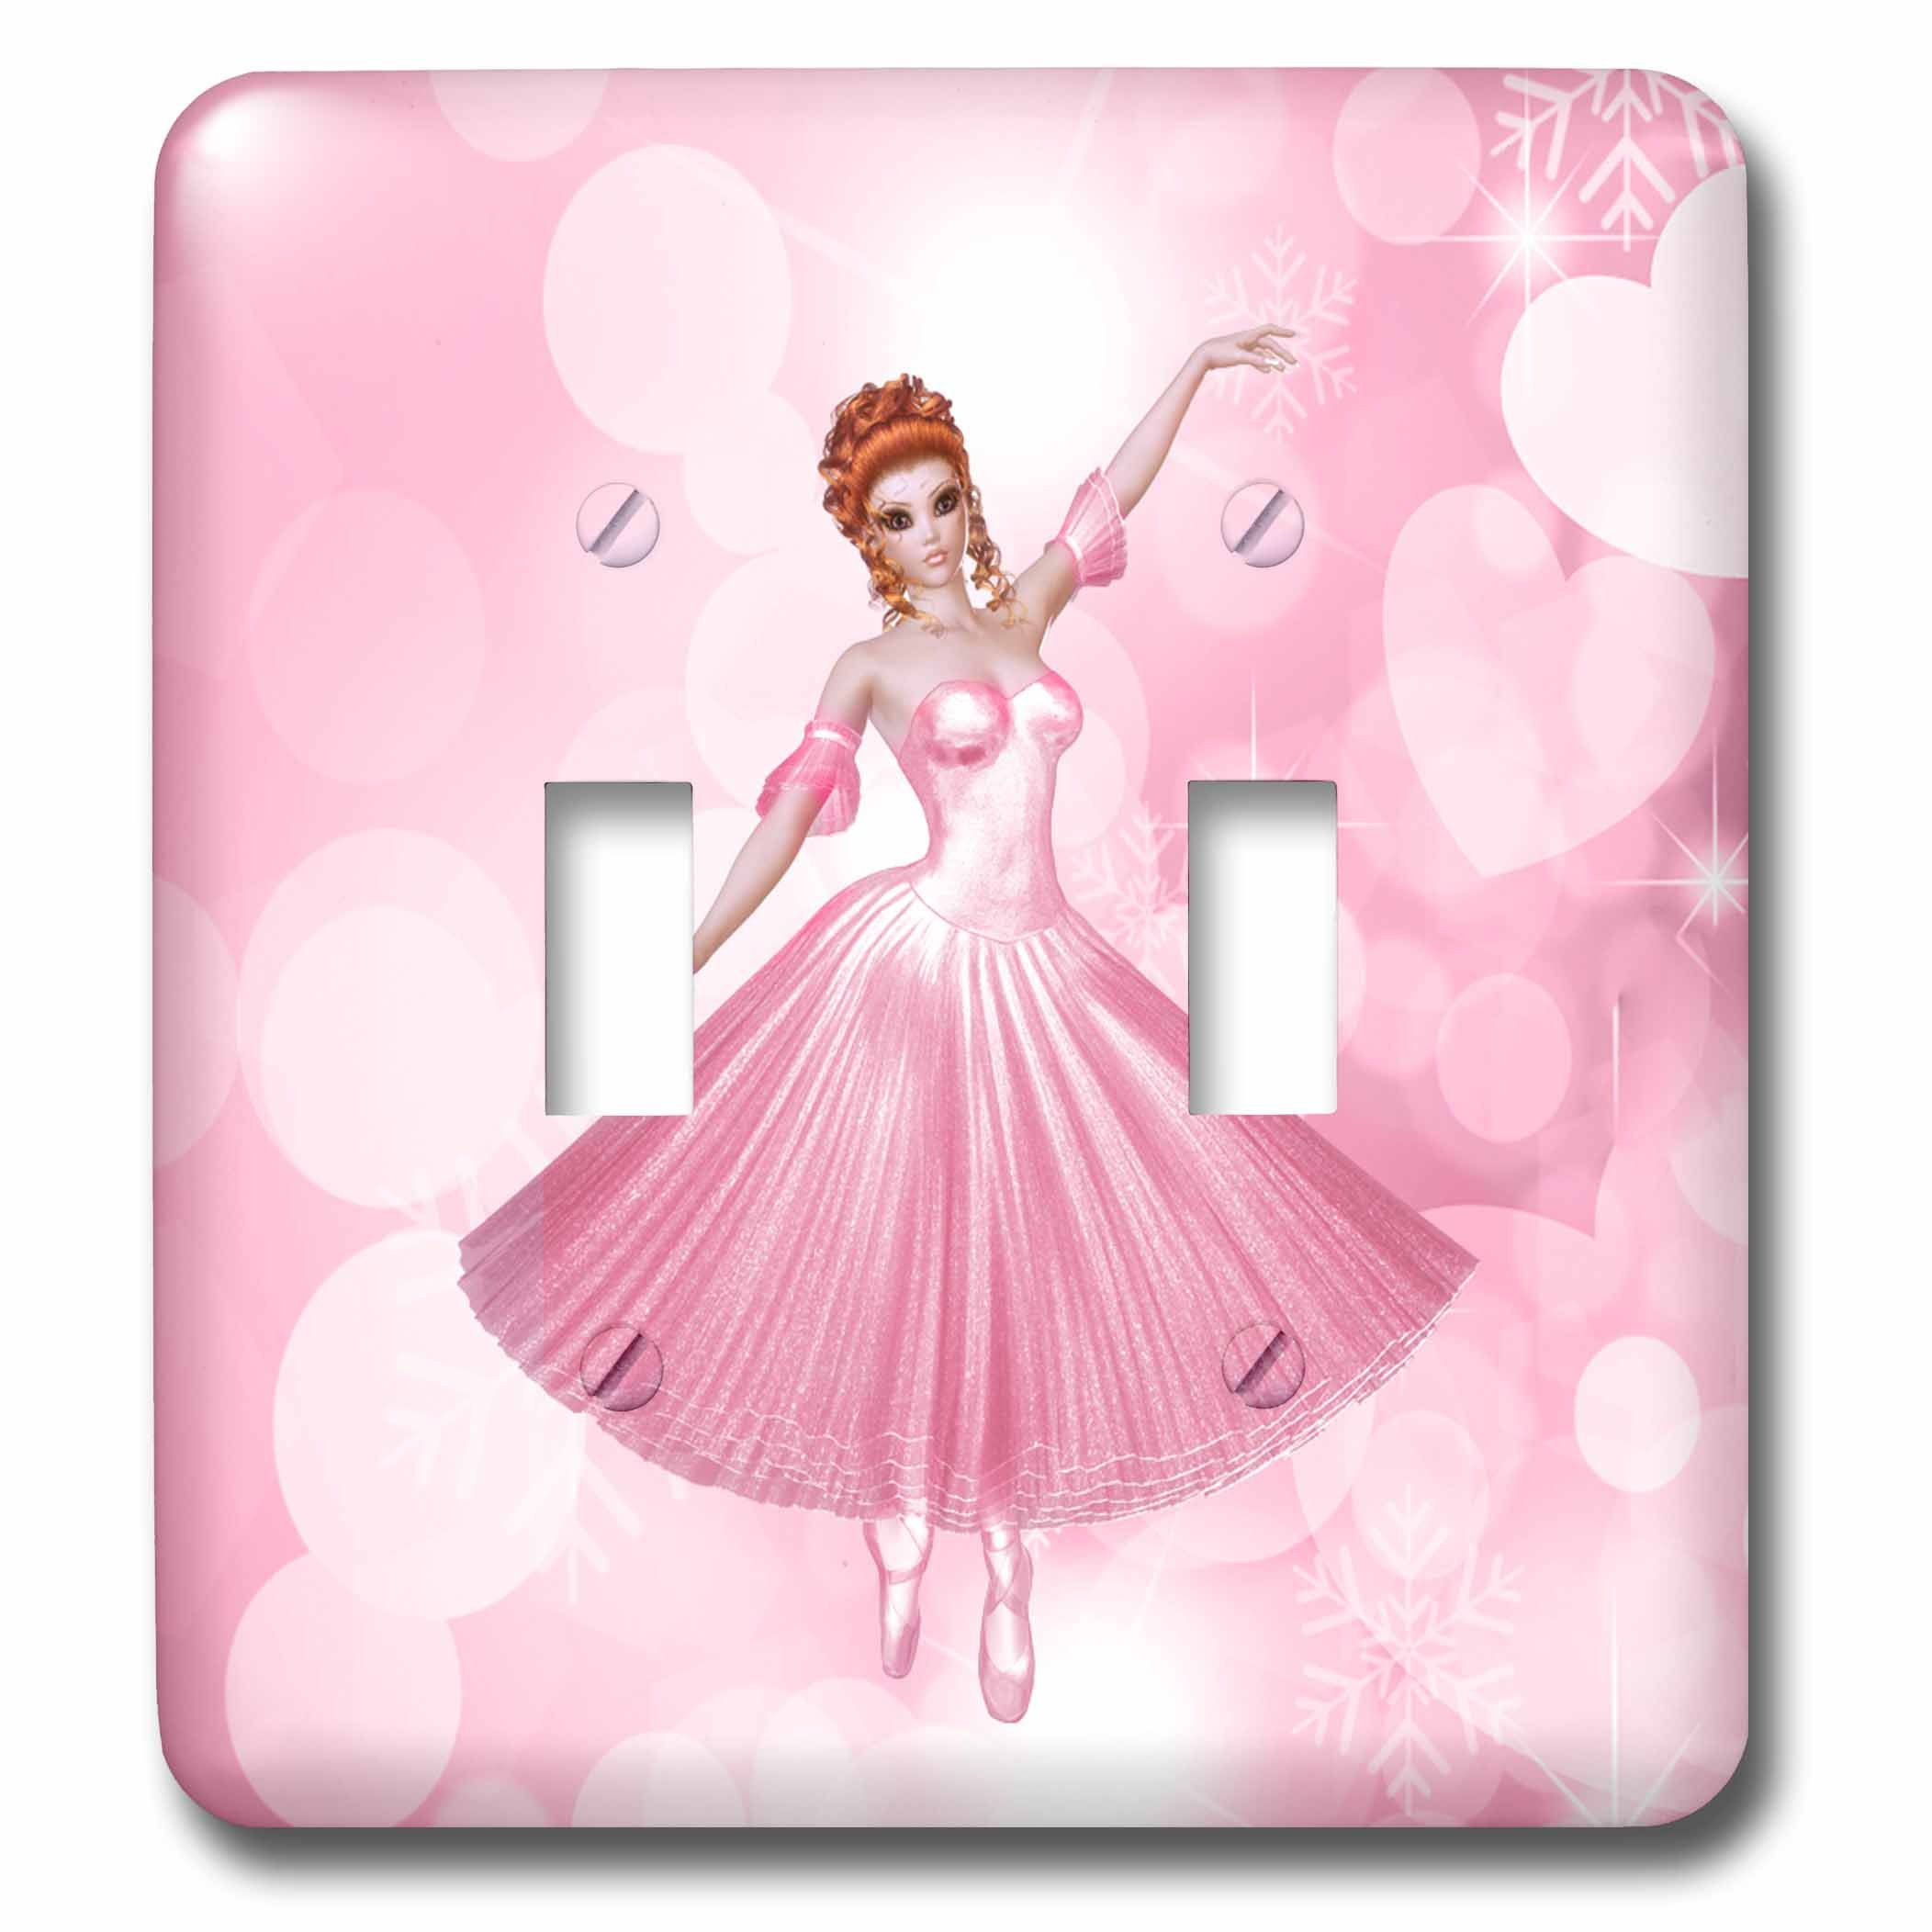 3dRose Doreen Erhardt Ballet - Pink Ballerina with Heart Shaped Bokeh for Girls - Light Switch Covers - double toggle switch (lsp_264268_2)